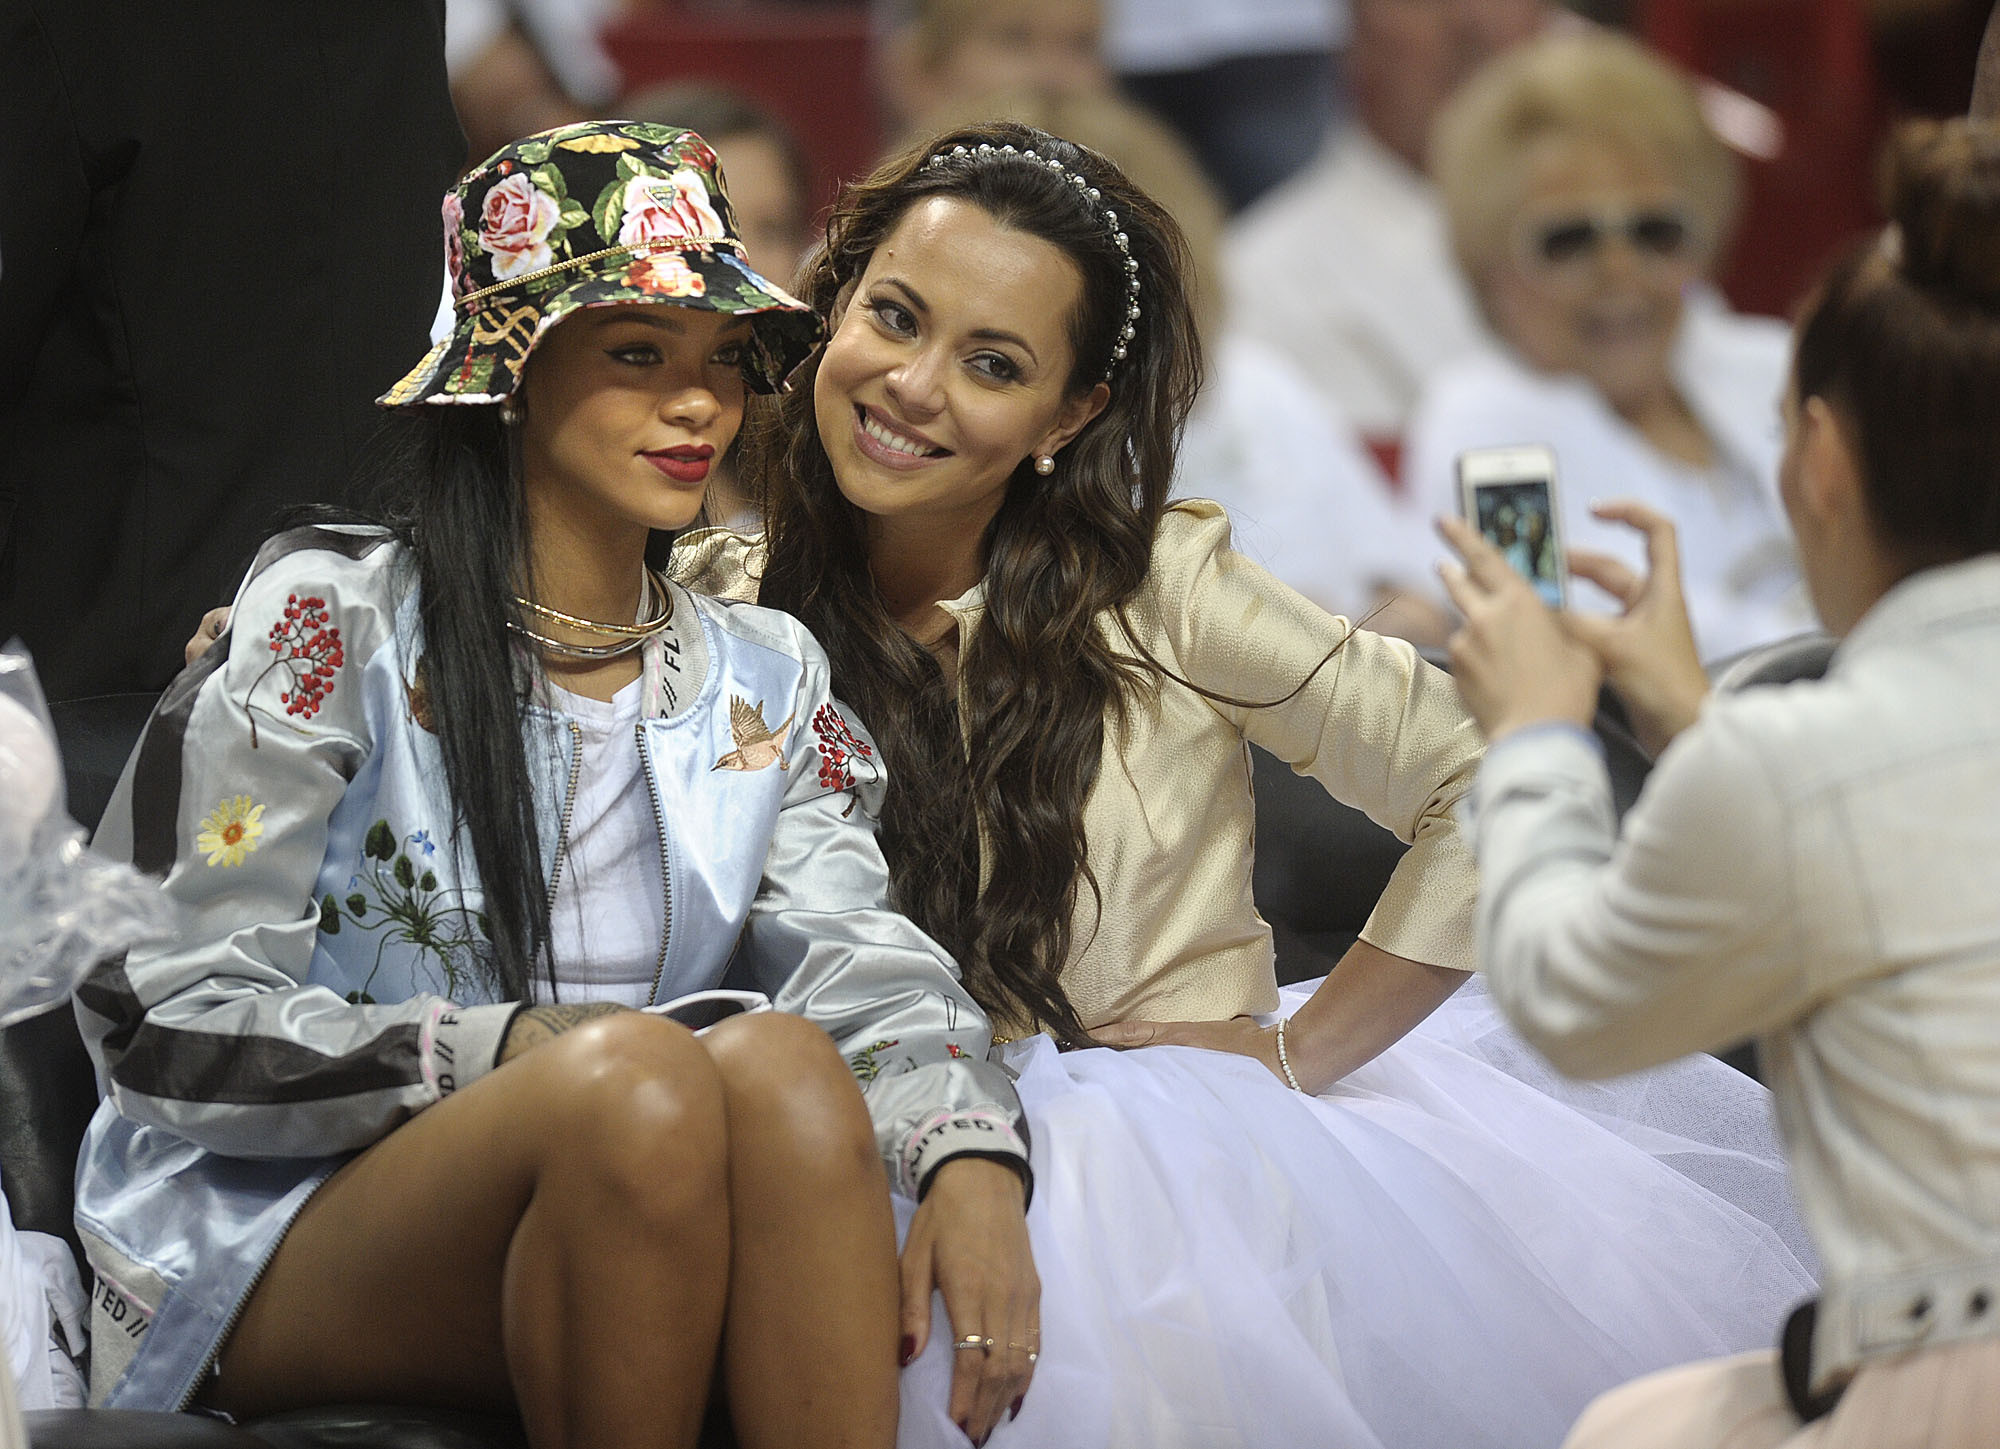 Celebs spotted at Miami Heat games - Rihanna